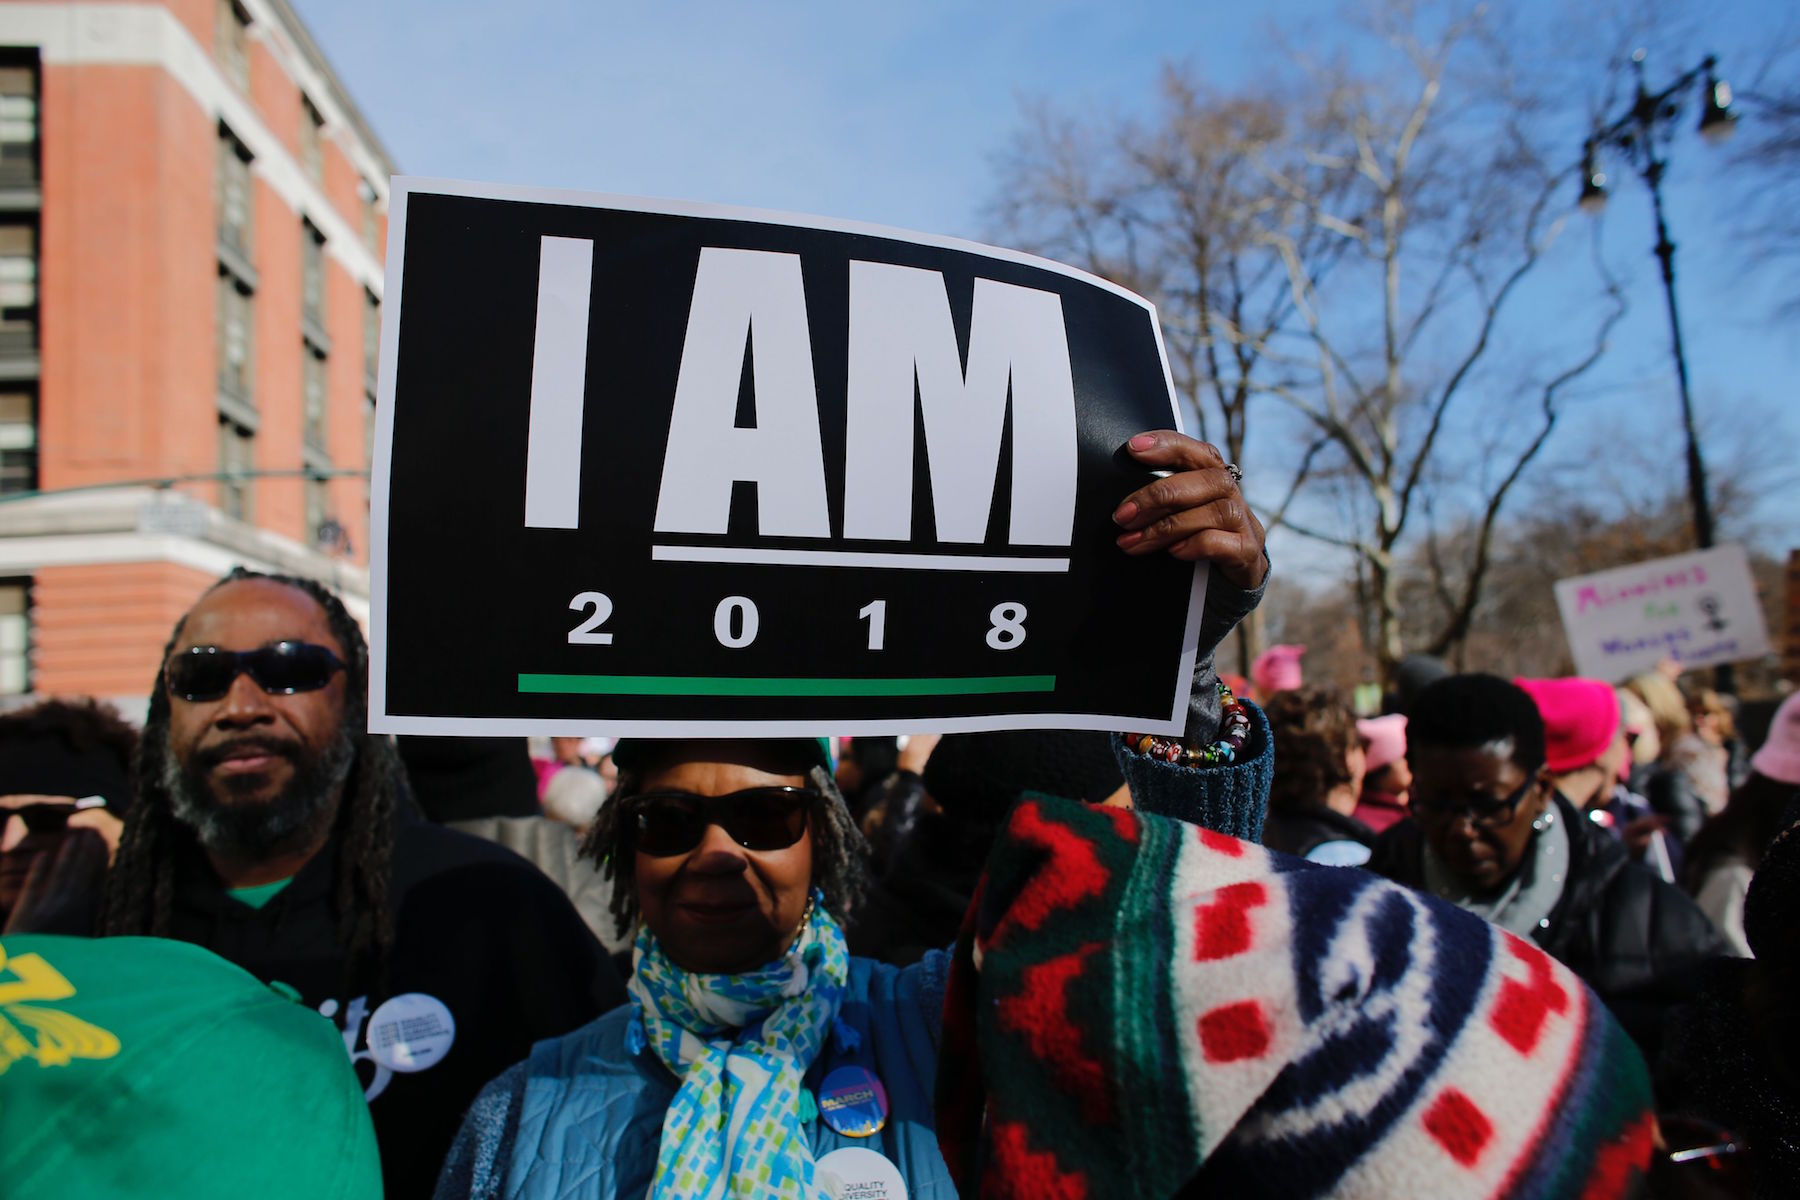 <div class='meta'><div class='origin-logo' data-origin='none'></div><span class='caption-text' data-credit='Kena Betancur/AFP/Getty Images'>A woman holds a sign as she attends the Women's March on New York City on January 20, 2018 in New York City.</span></div>